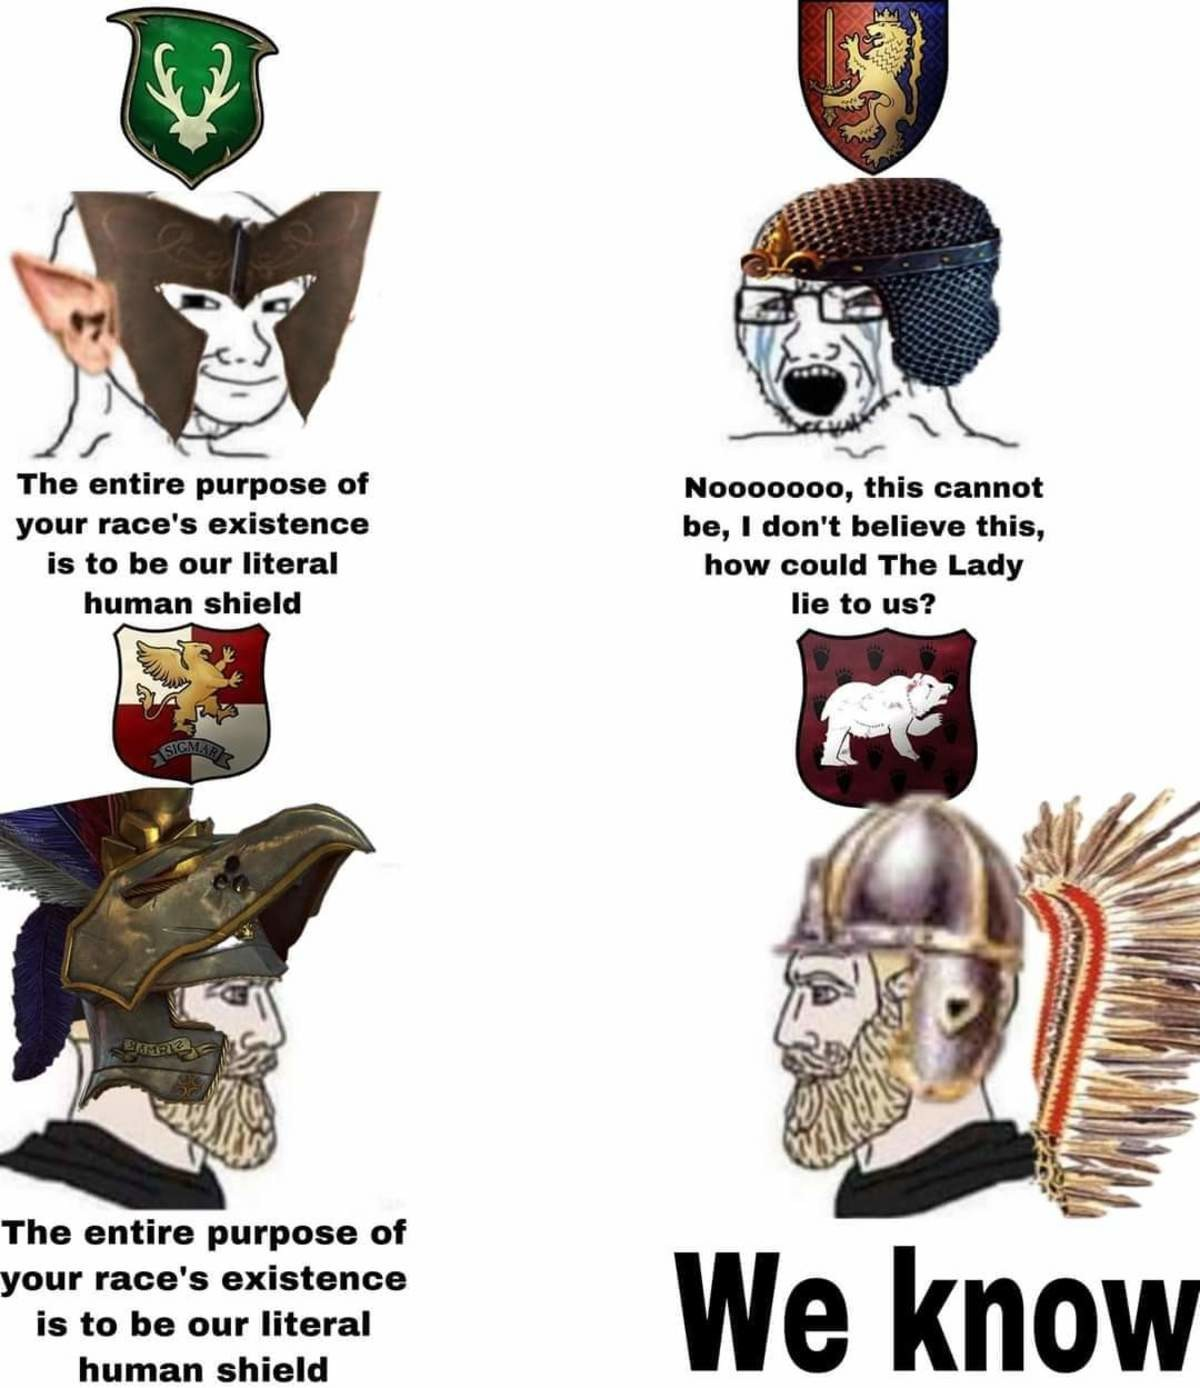 ill-informed rabid confused Trout. .. WINGED HUSSARS SOON LADS KISLEV NOW